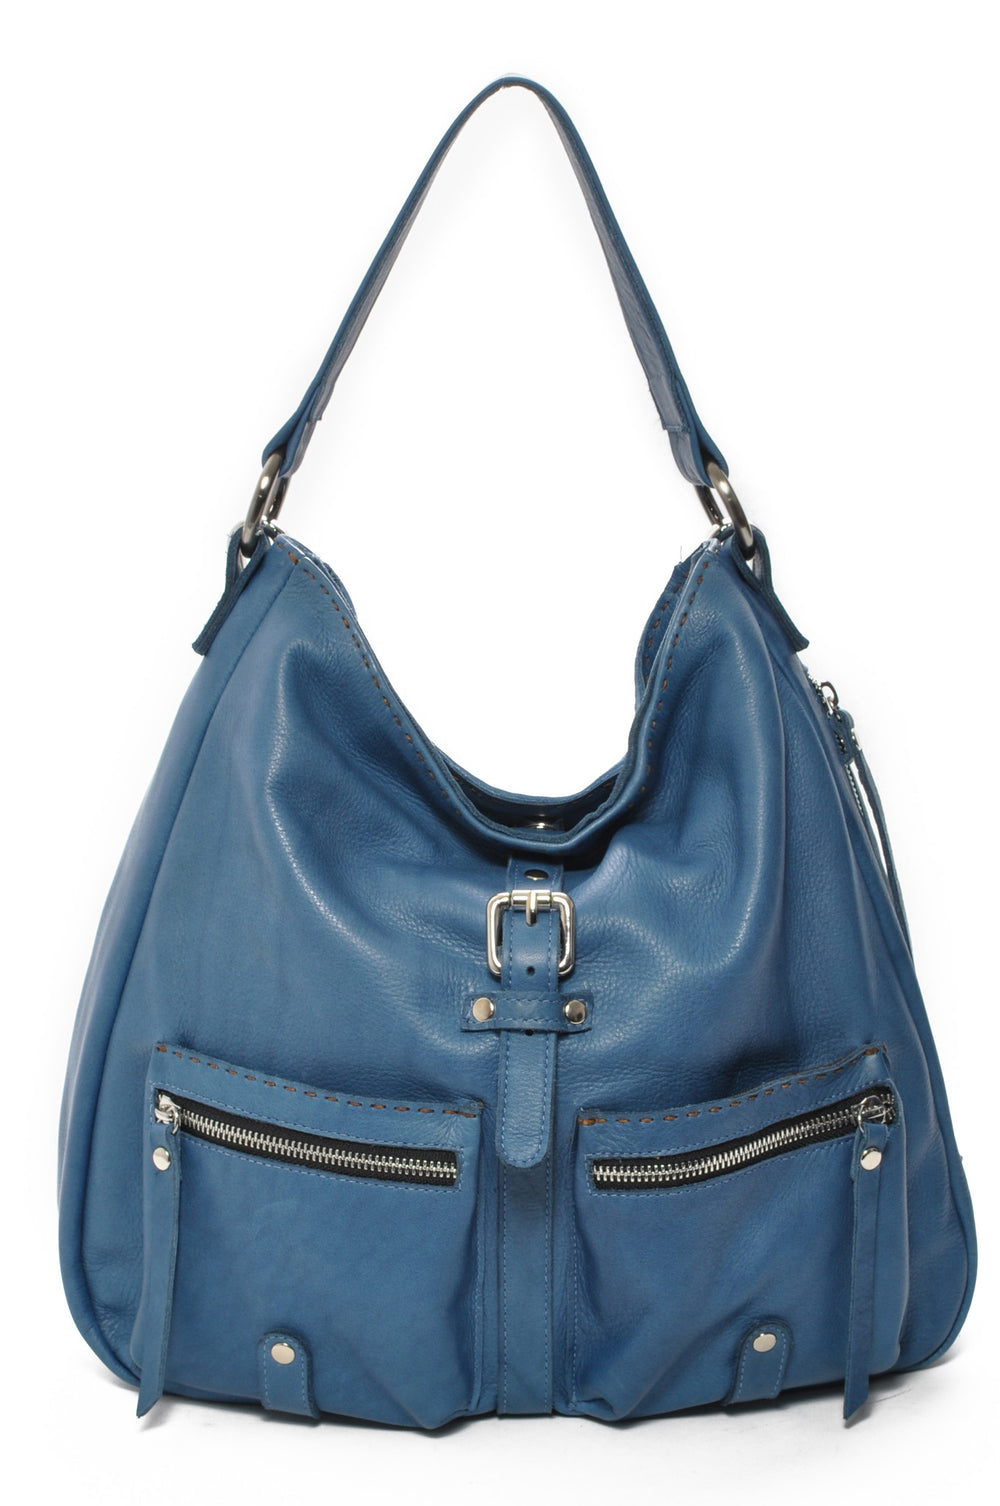 MADISON Cobalt